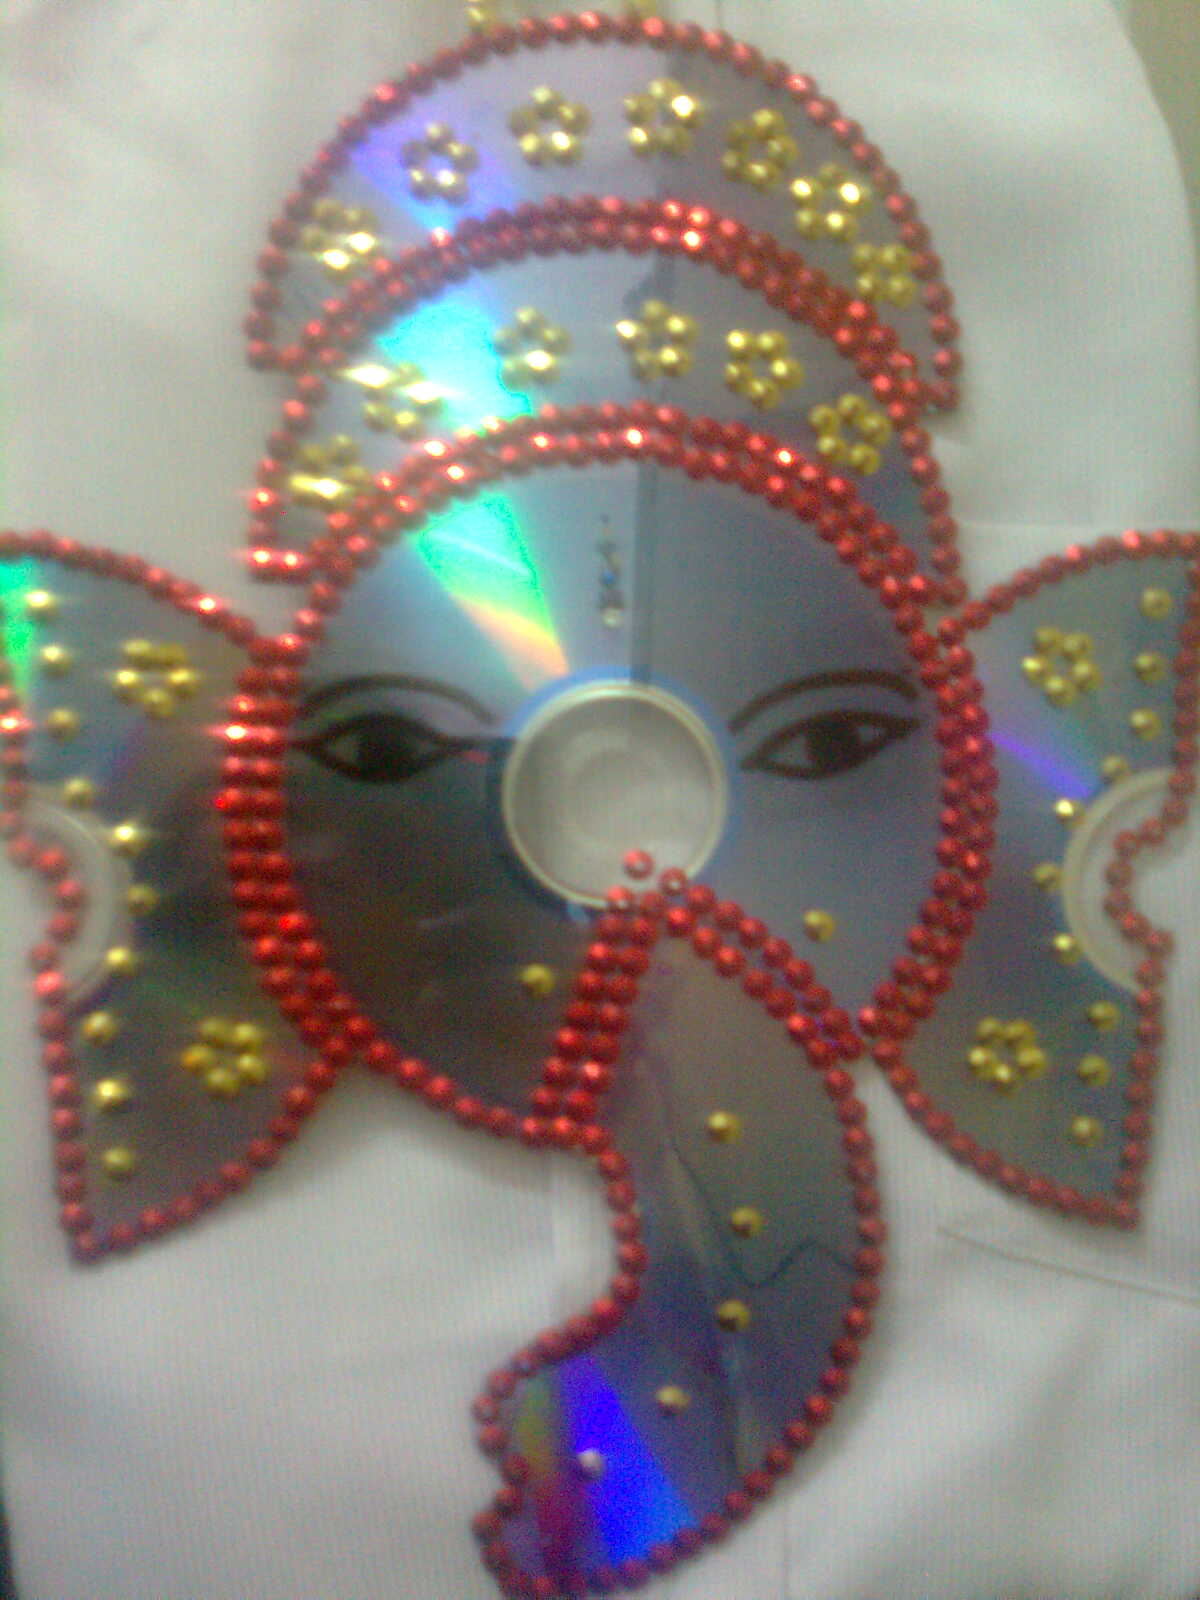 Maha Arts & Crafts: CD Ganesh / Vinayagar